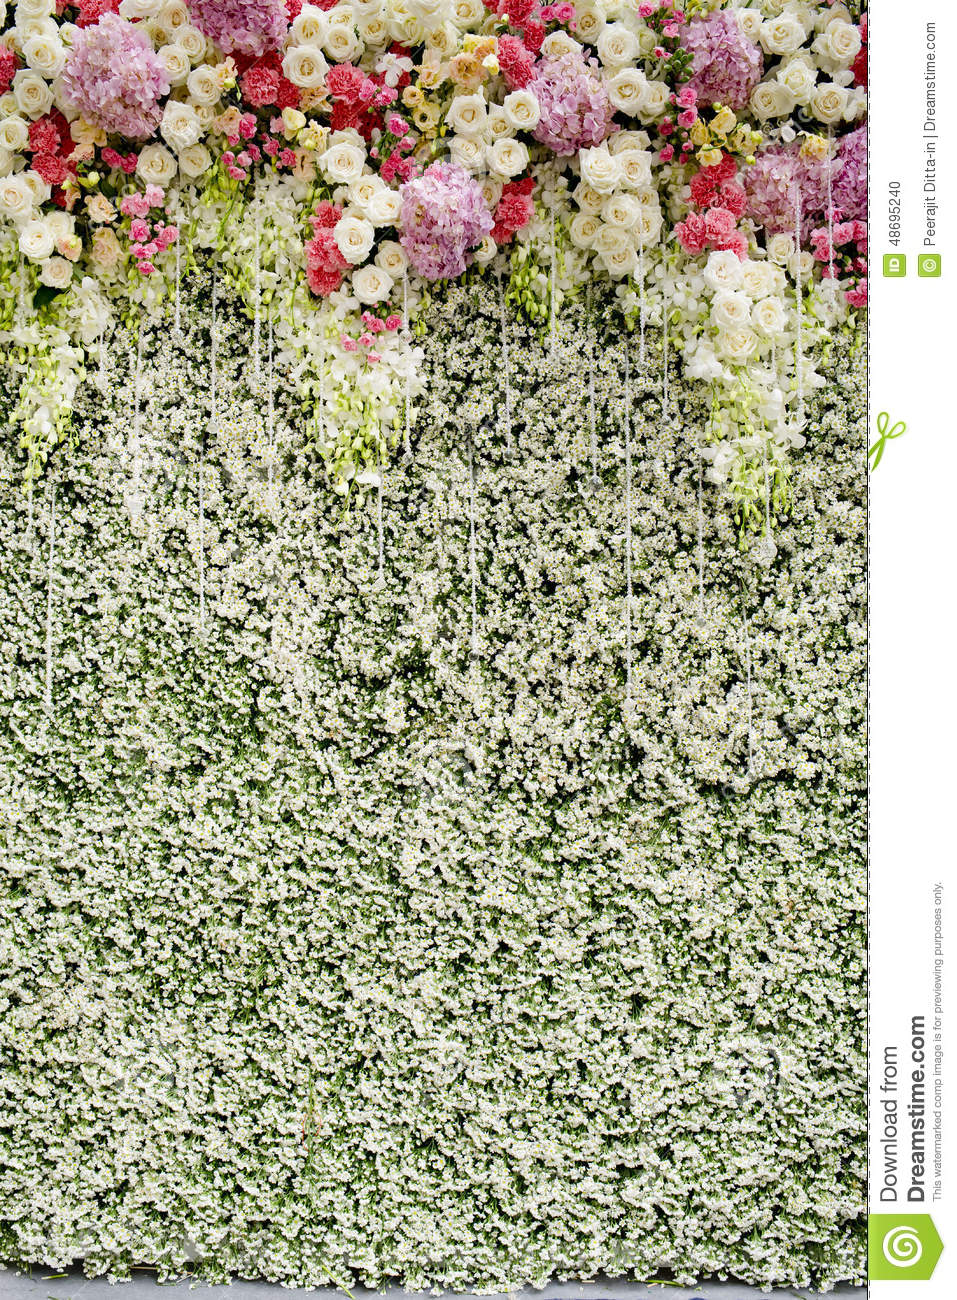 Colorful Flowers With Green Wall For Wedding Backdrop Stock Photo  Image 48695240